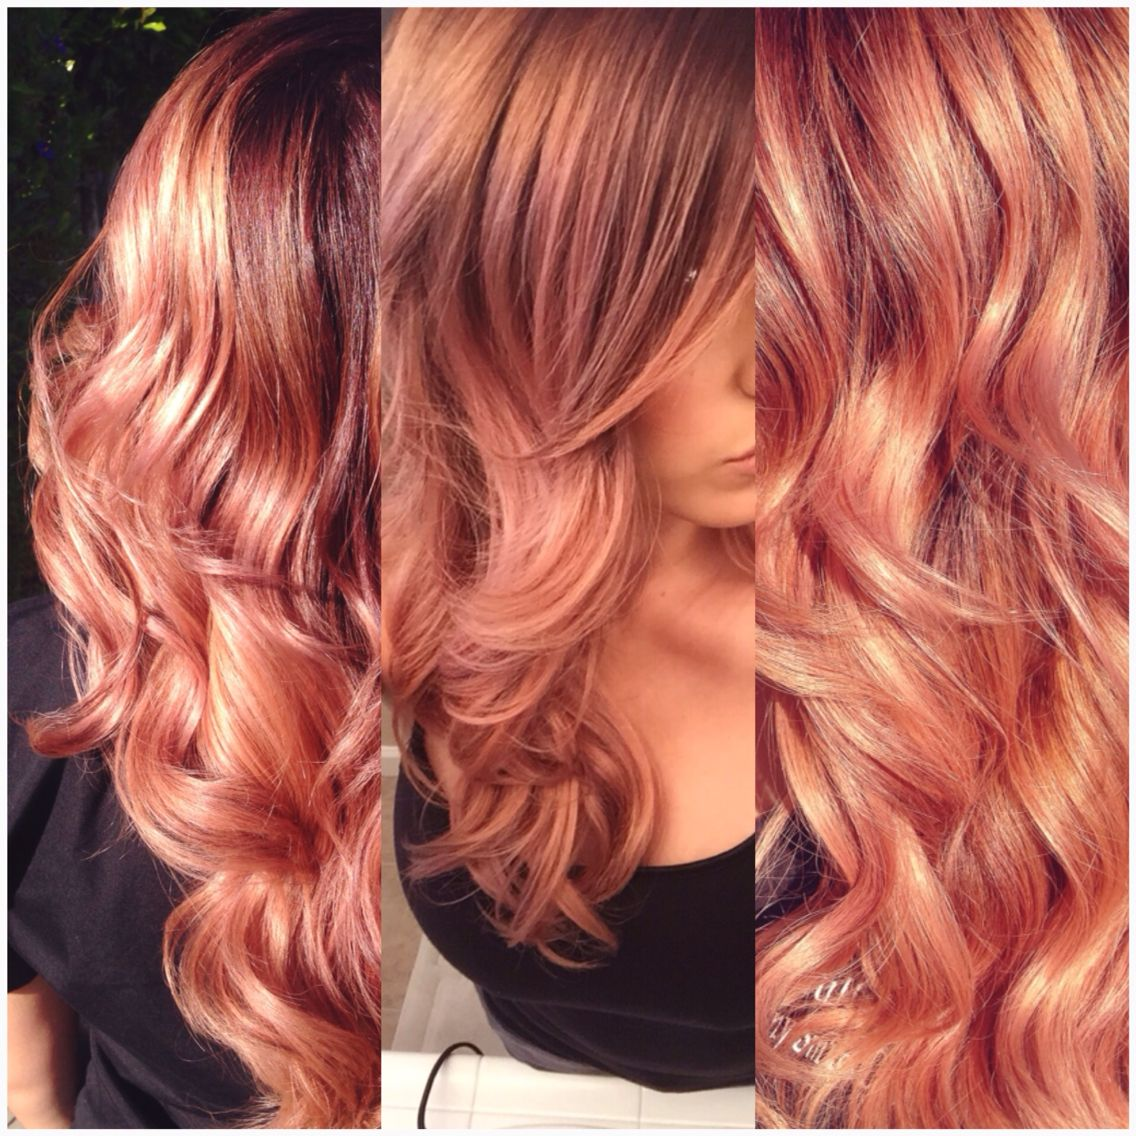 Framesi Color Methodcolor Lock System Extend The Life Of Your Haircolor Method Professionalonly Perfect Completion To C